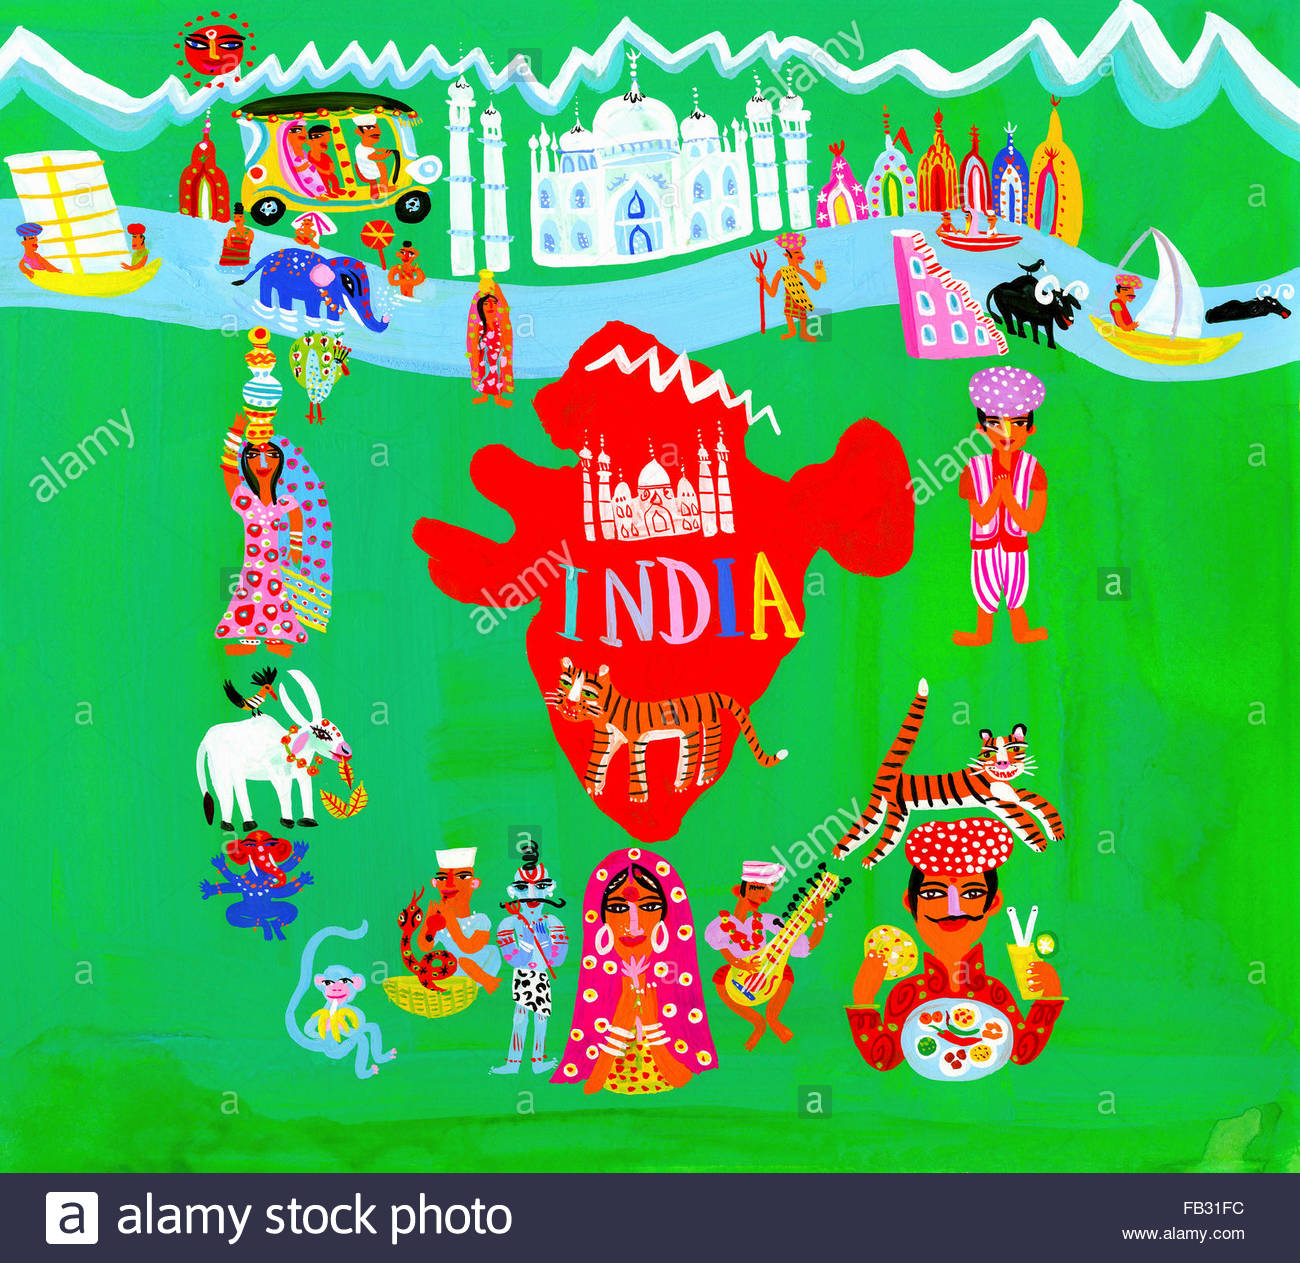 map of india surrounded by indian people and culture stock photo